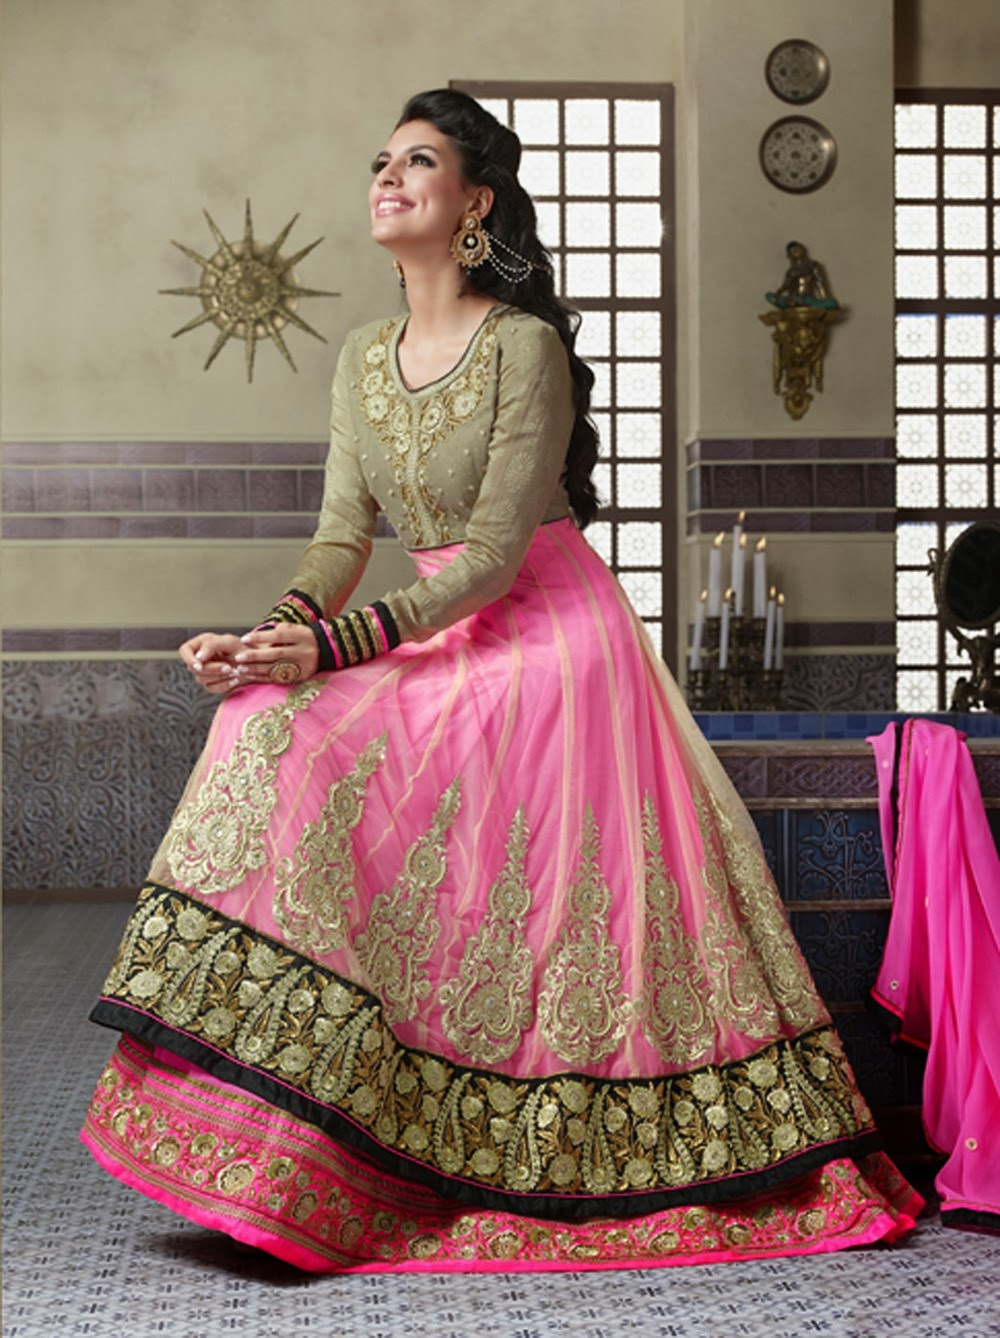 Wedding Dresses Indian Designer - Wedding Dress Buy Online Usa